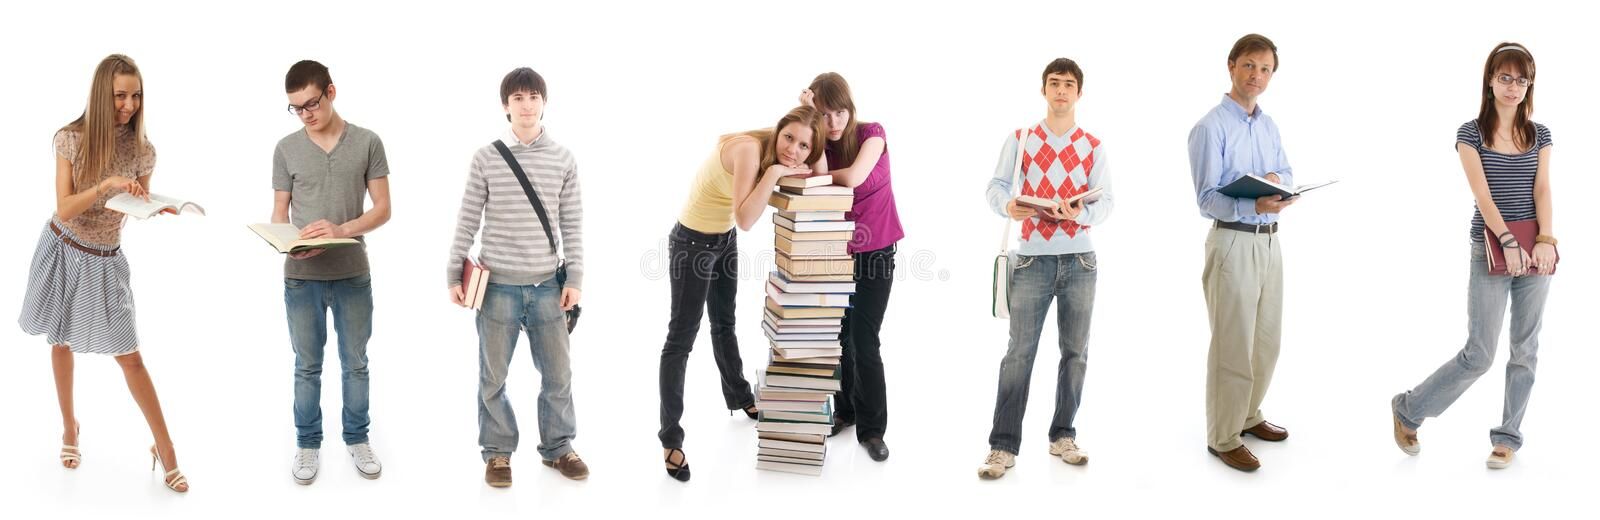 The eight young students isolated on a white royalty free stock image